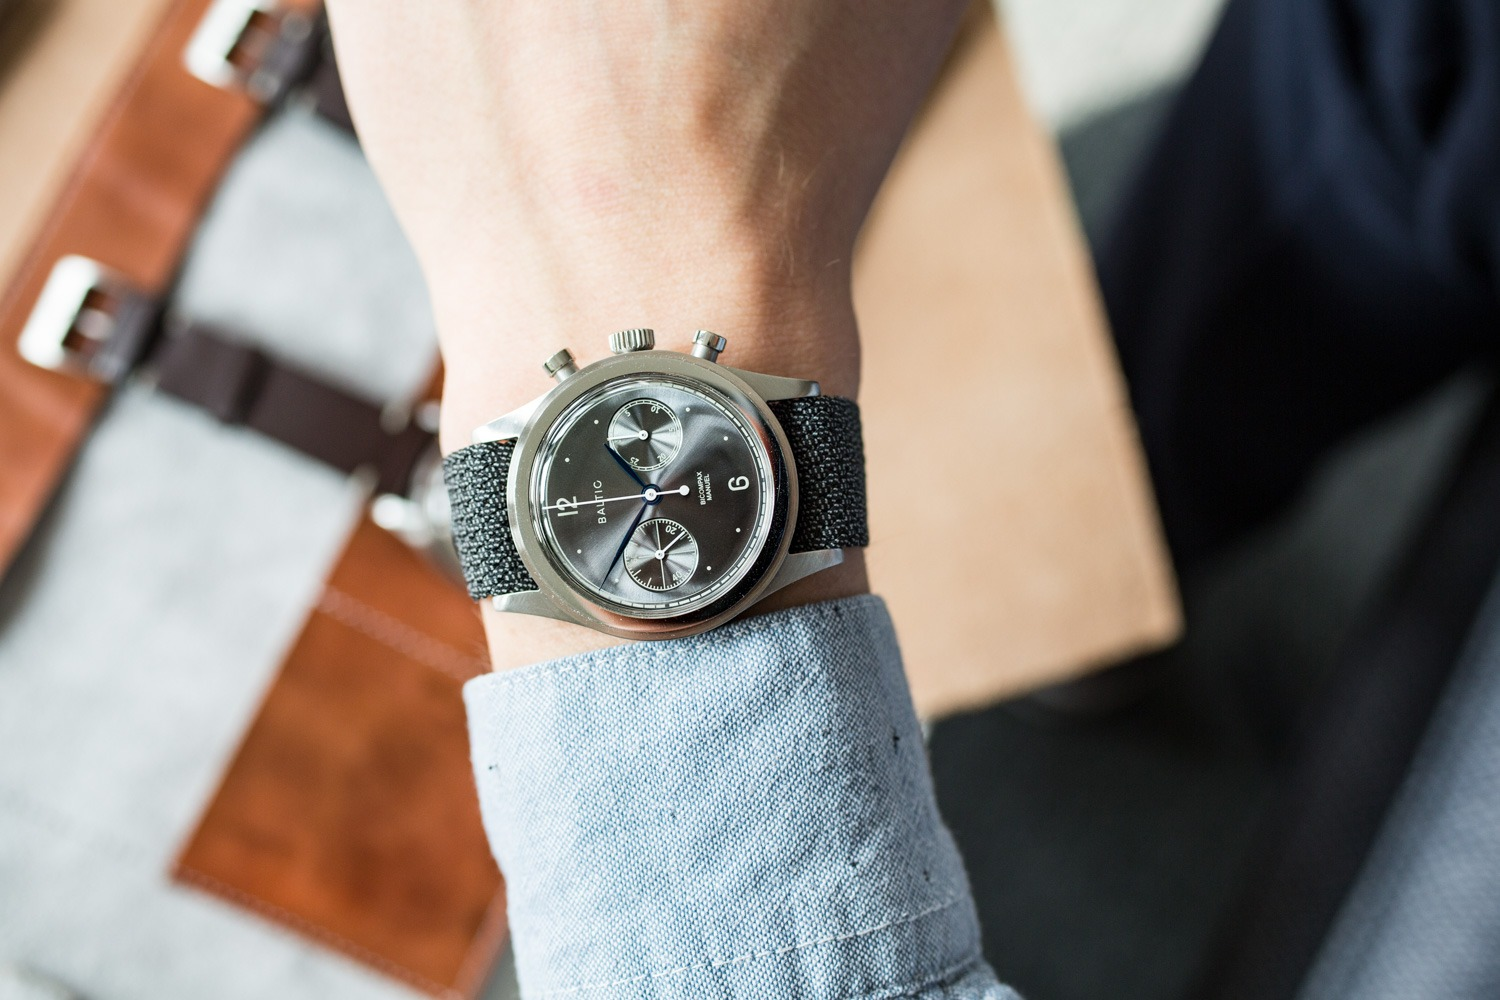 Baltic and Kickstarter - Bi-Compax Chronograph